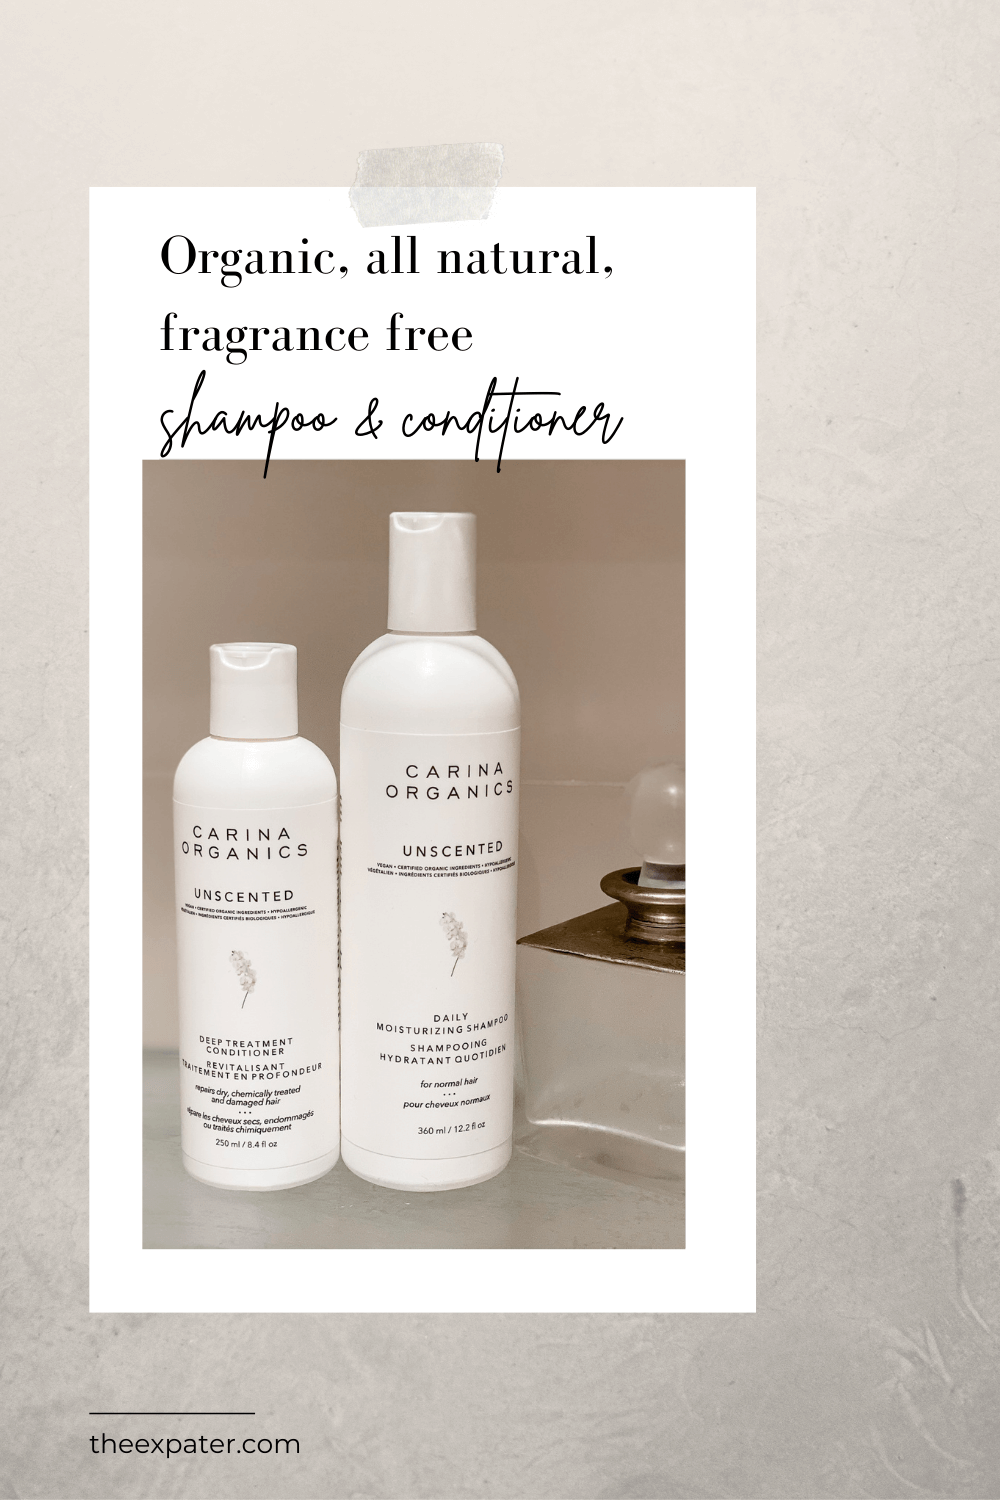 fragrance free shampoo & conditioner